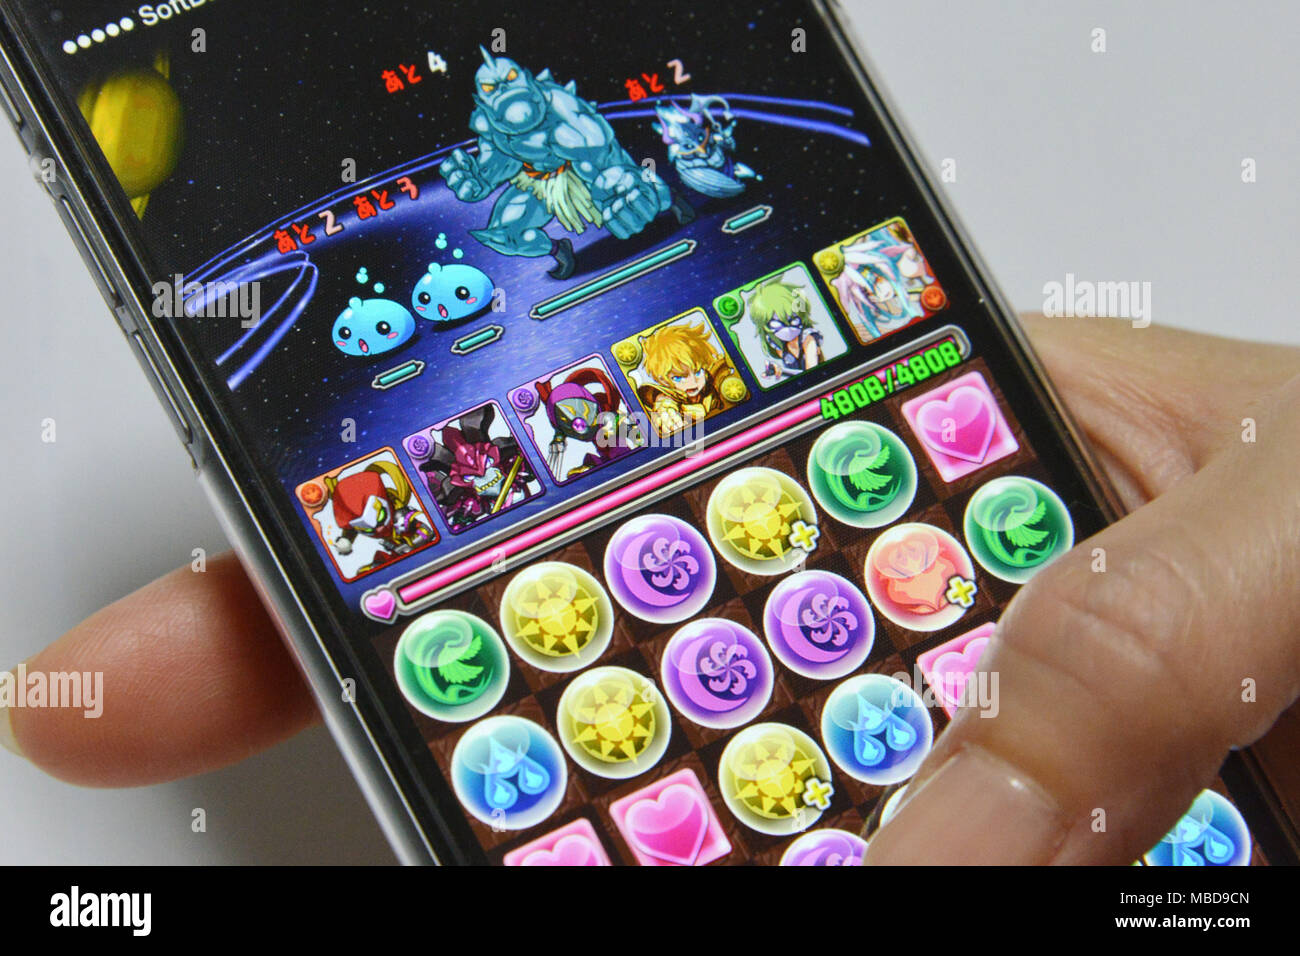 Puzzle & Dragons, puzzle video game for iPad, iPhone, iPod Touch and